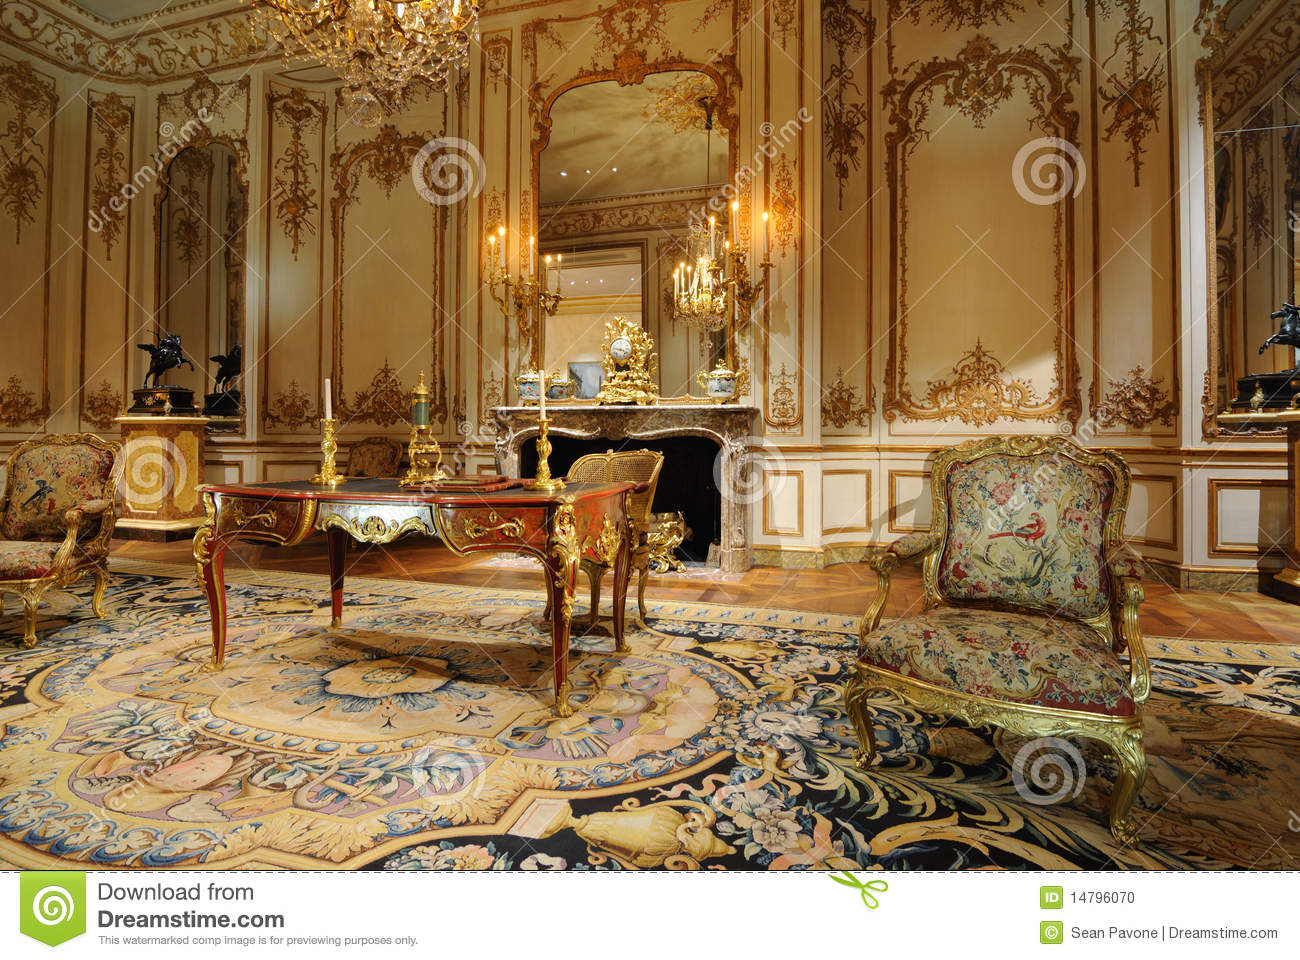 Antique Room - Antique Room Editorial Image. Image Of Room, French, Displays